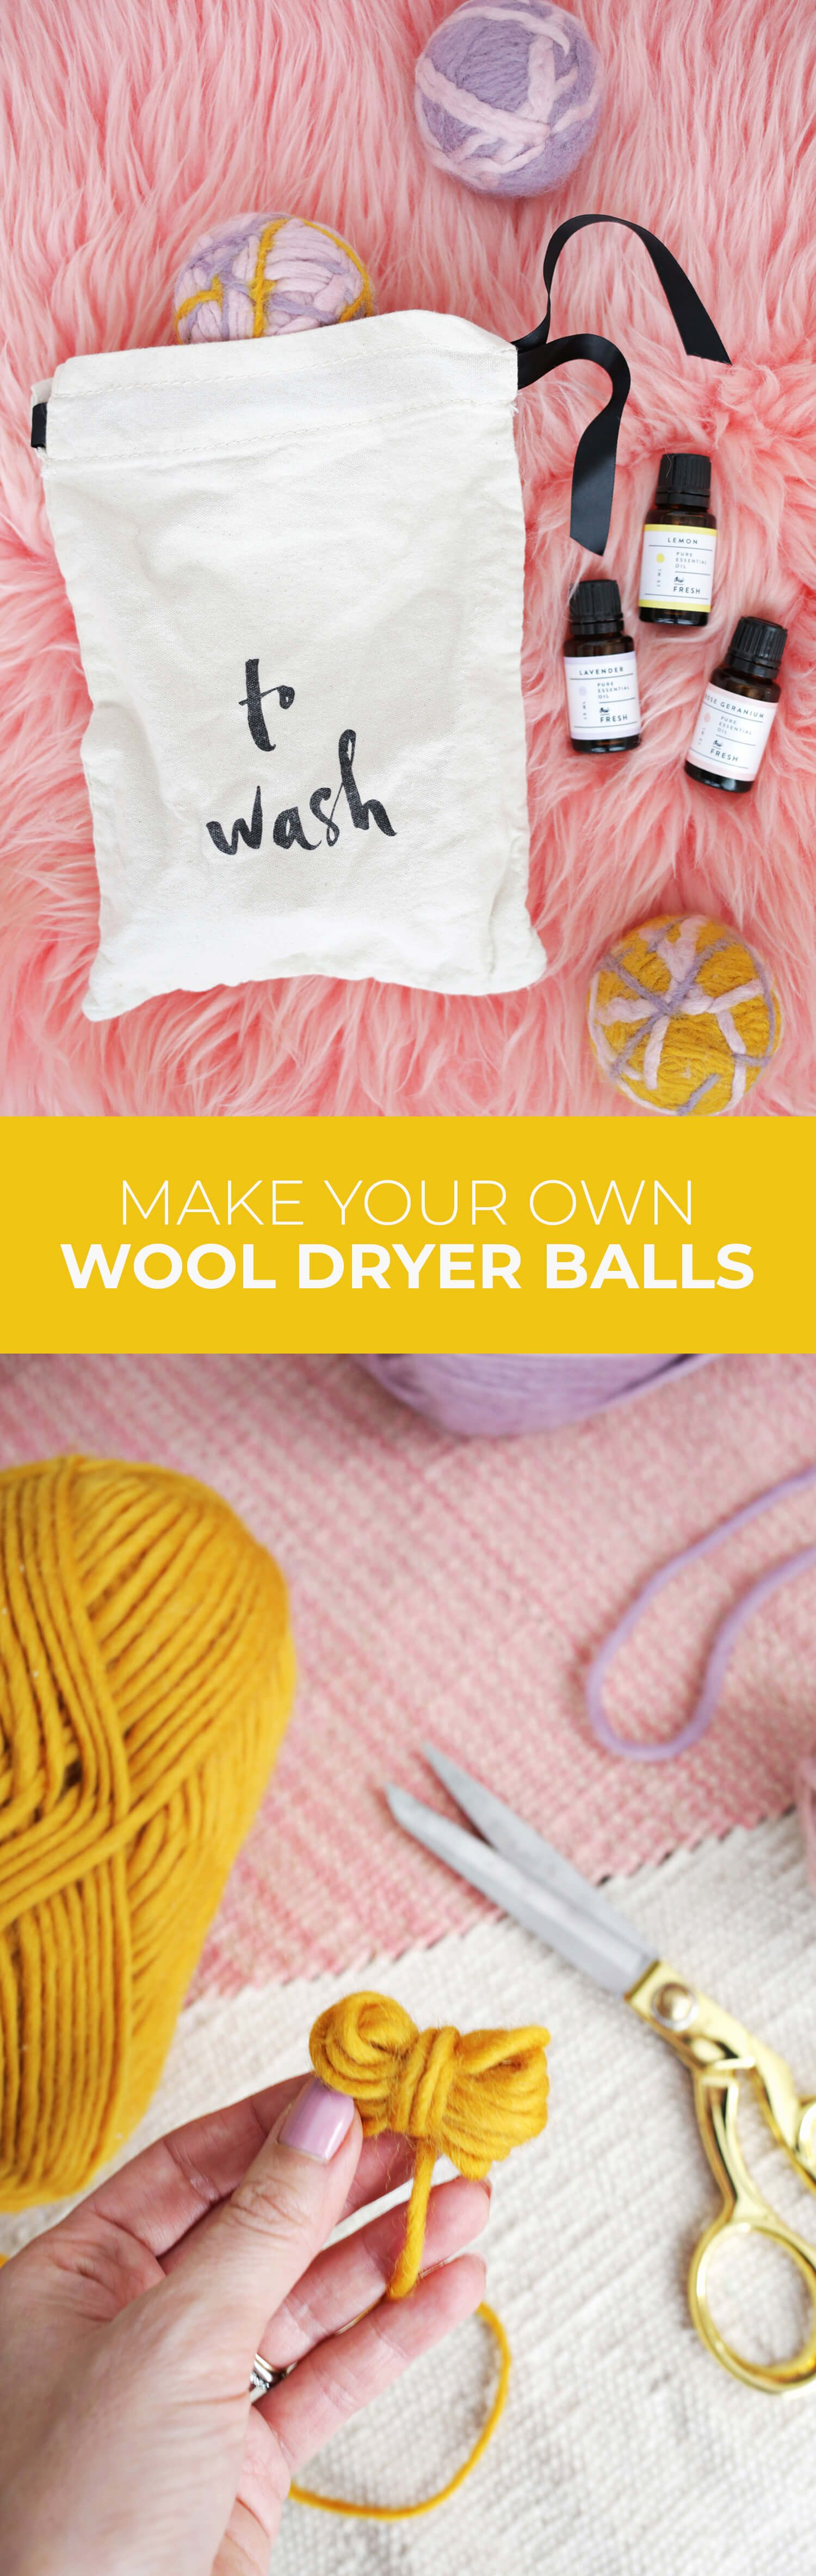 Make Your Own Set of Wool Dryer Balls! – A Beautiful Mess